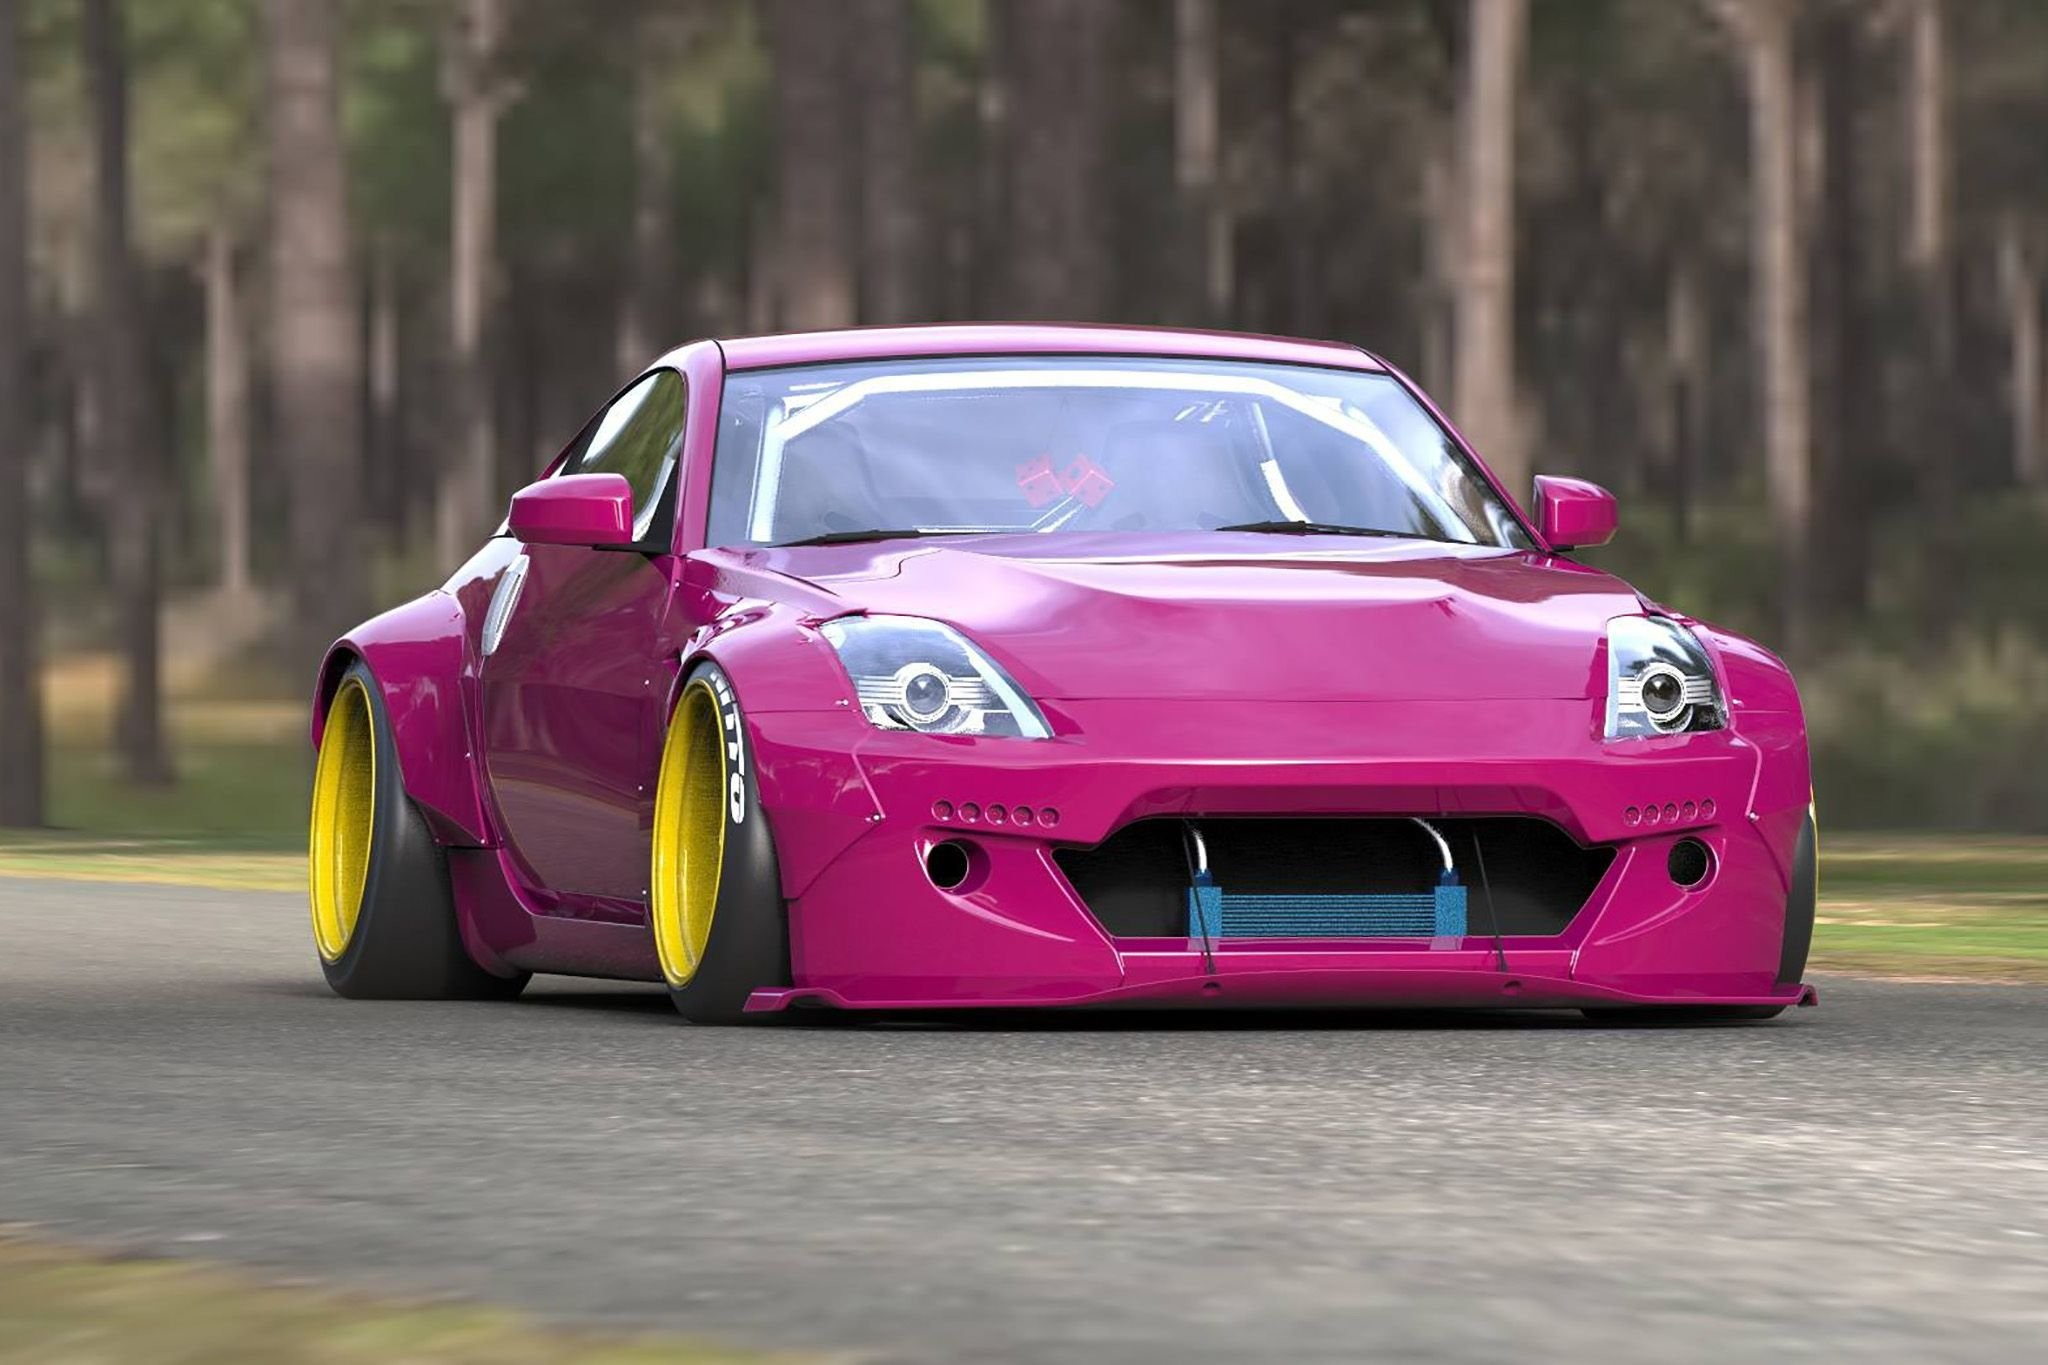 2048x1365 Rocket Bunny 350Z nissan modified bodykit cars wallpaper |  |  669687 | WallpaperUP